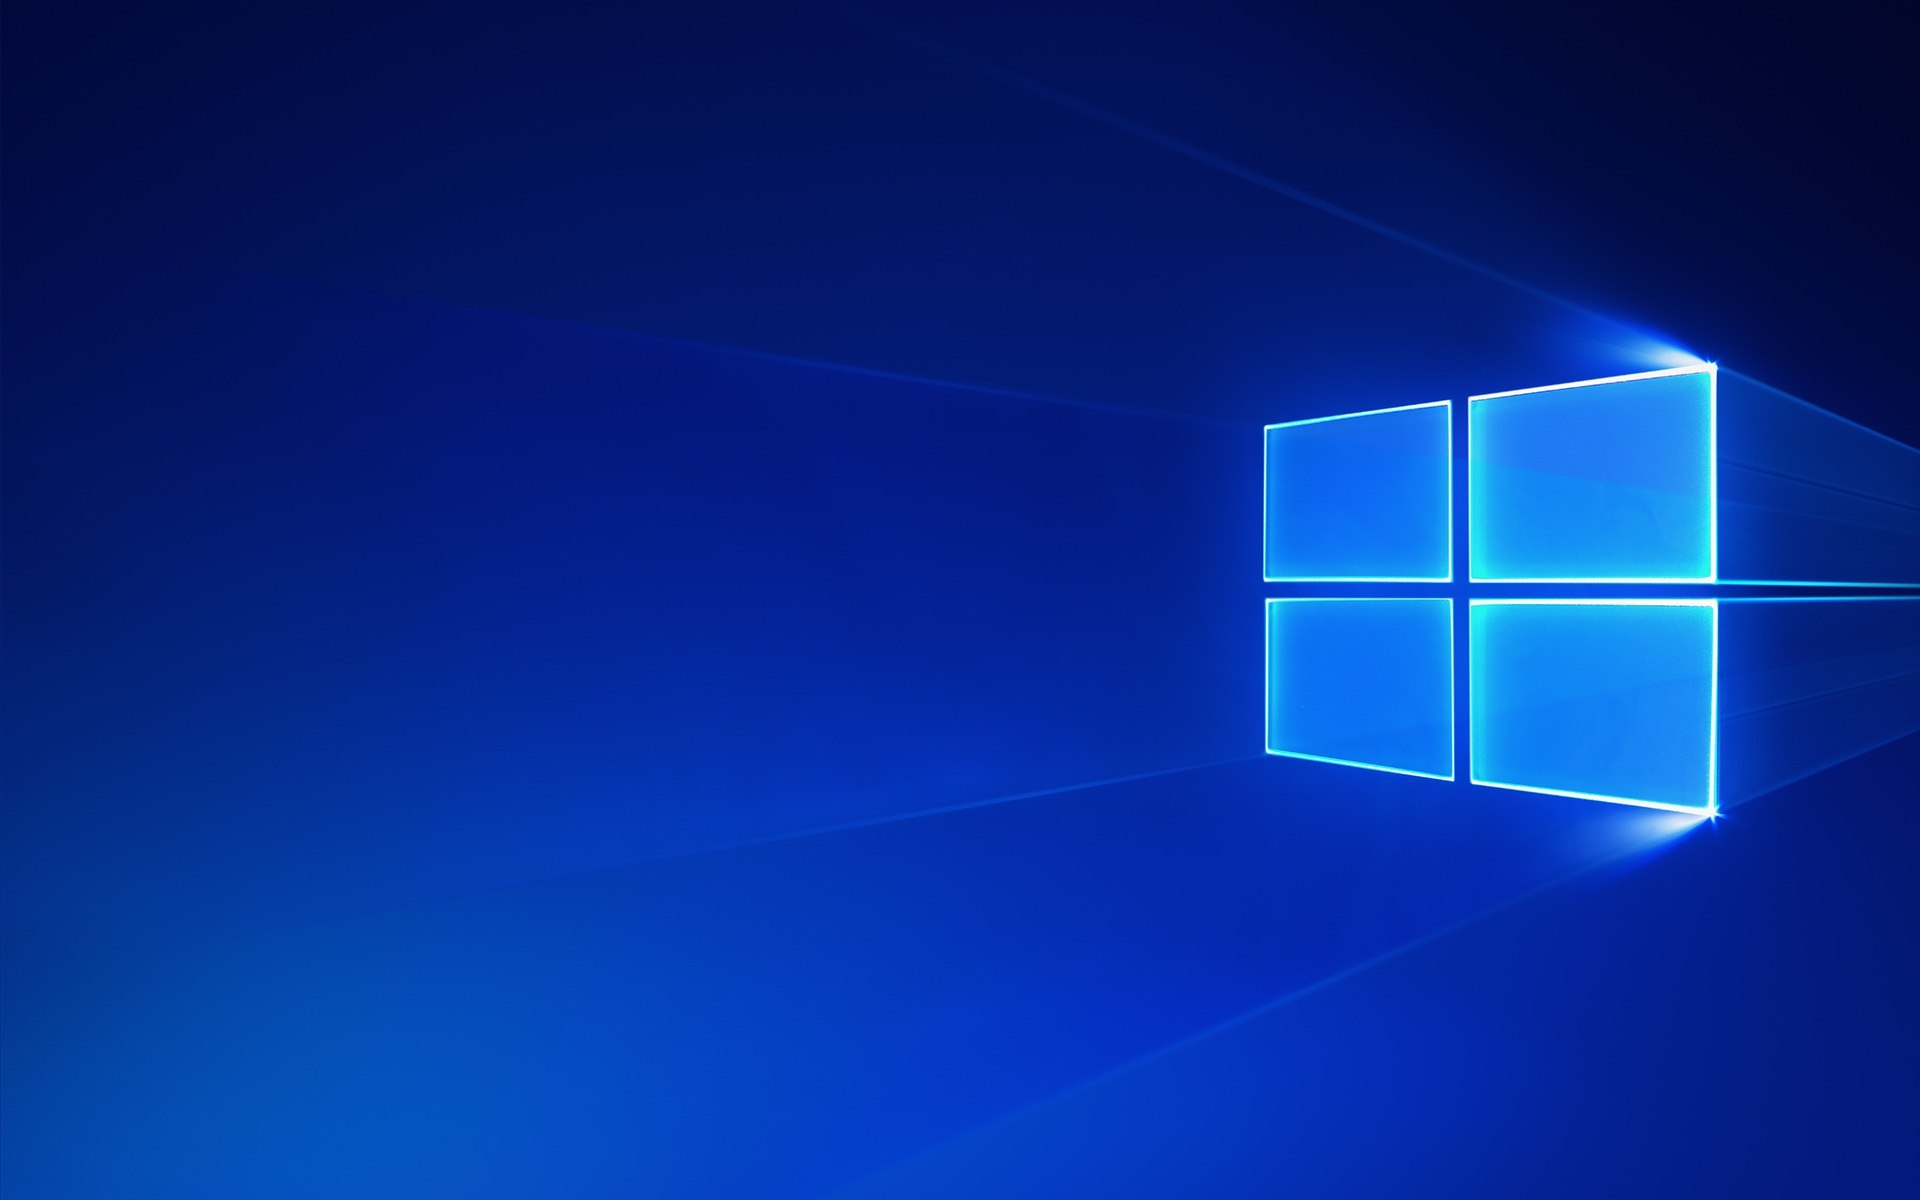 Windows HD Desktop Wallpapers for 4K Ultra HD TV ★ Wide & Ultra Widescreen Displays ★ Dual Monitor / Multi Display Desktops ★ Tablet ★ Smartphone ★ Mobile Devices | Page 1.